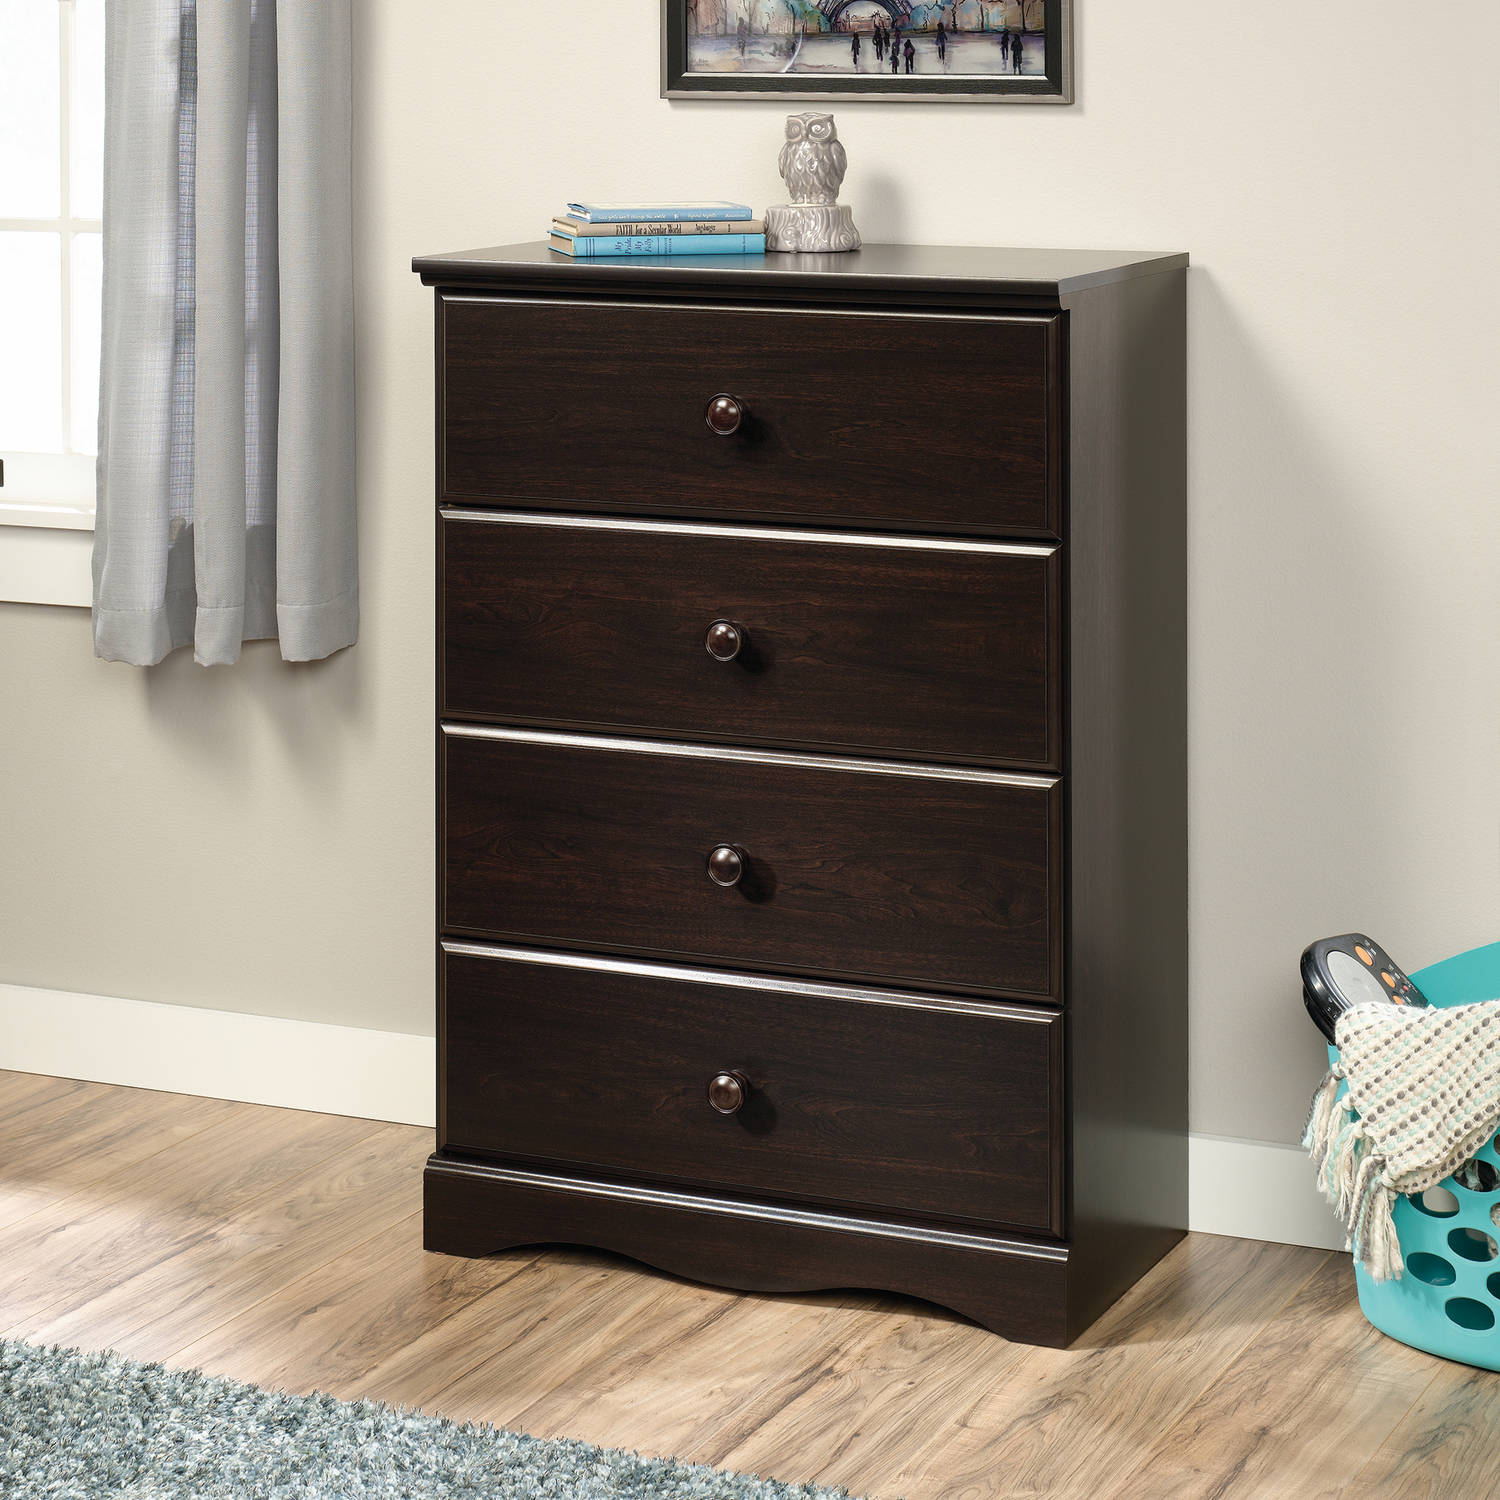 Details About Sauder Storybook 4 Drawer Chest Soft White Finish